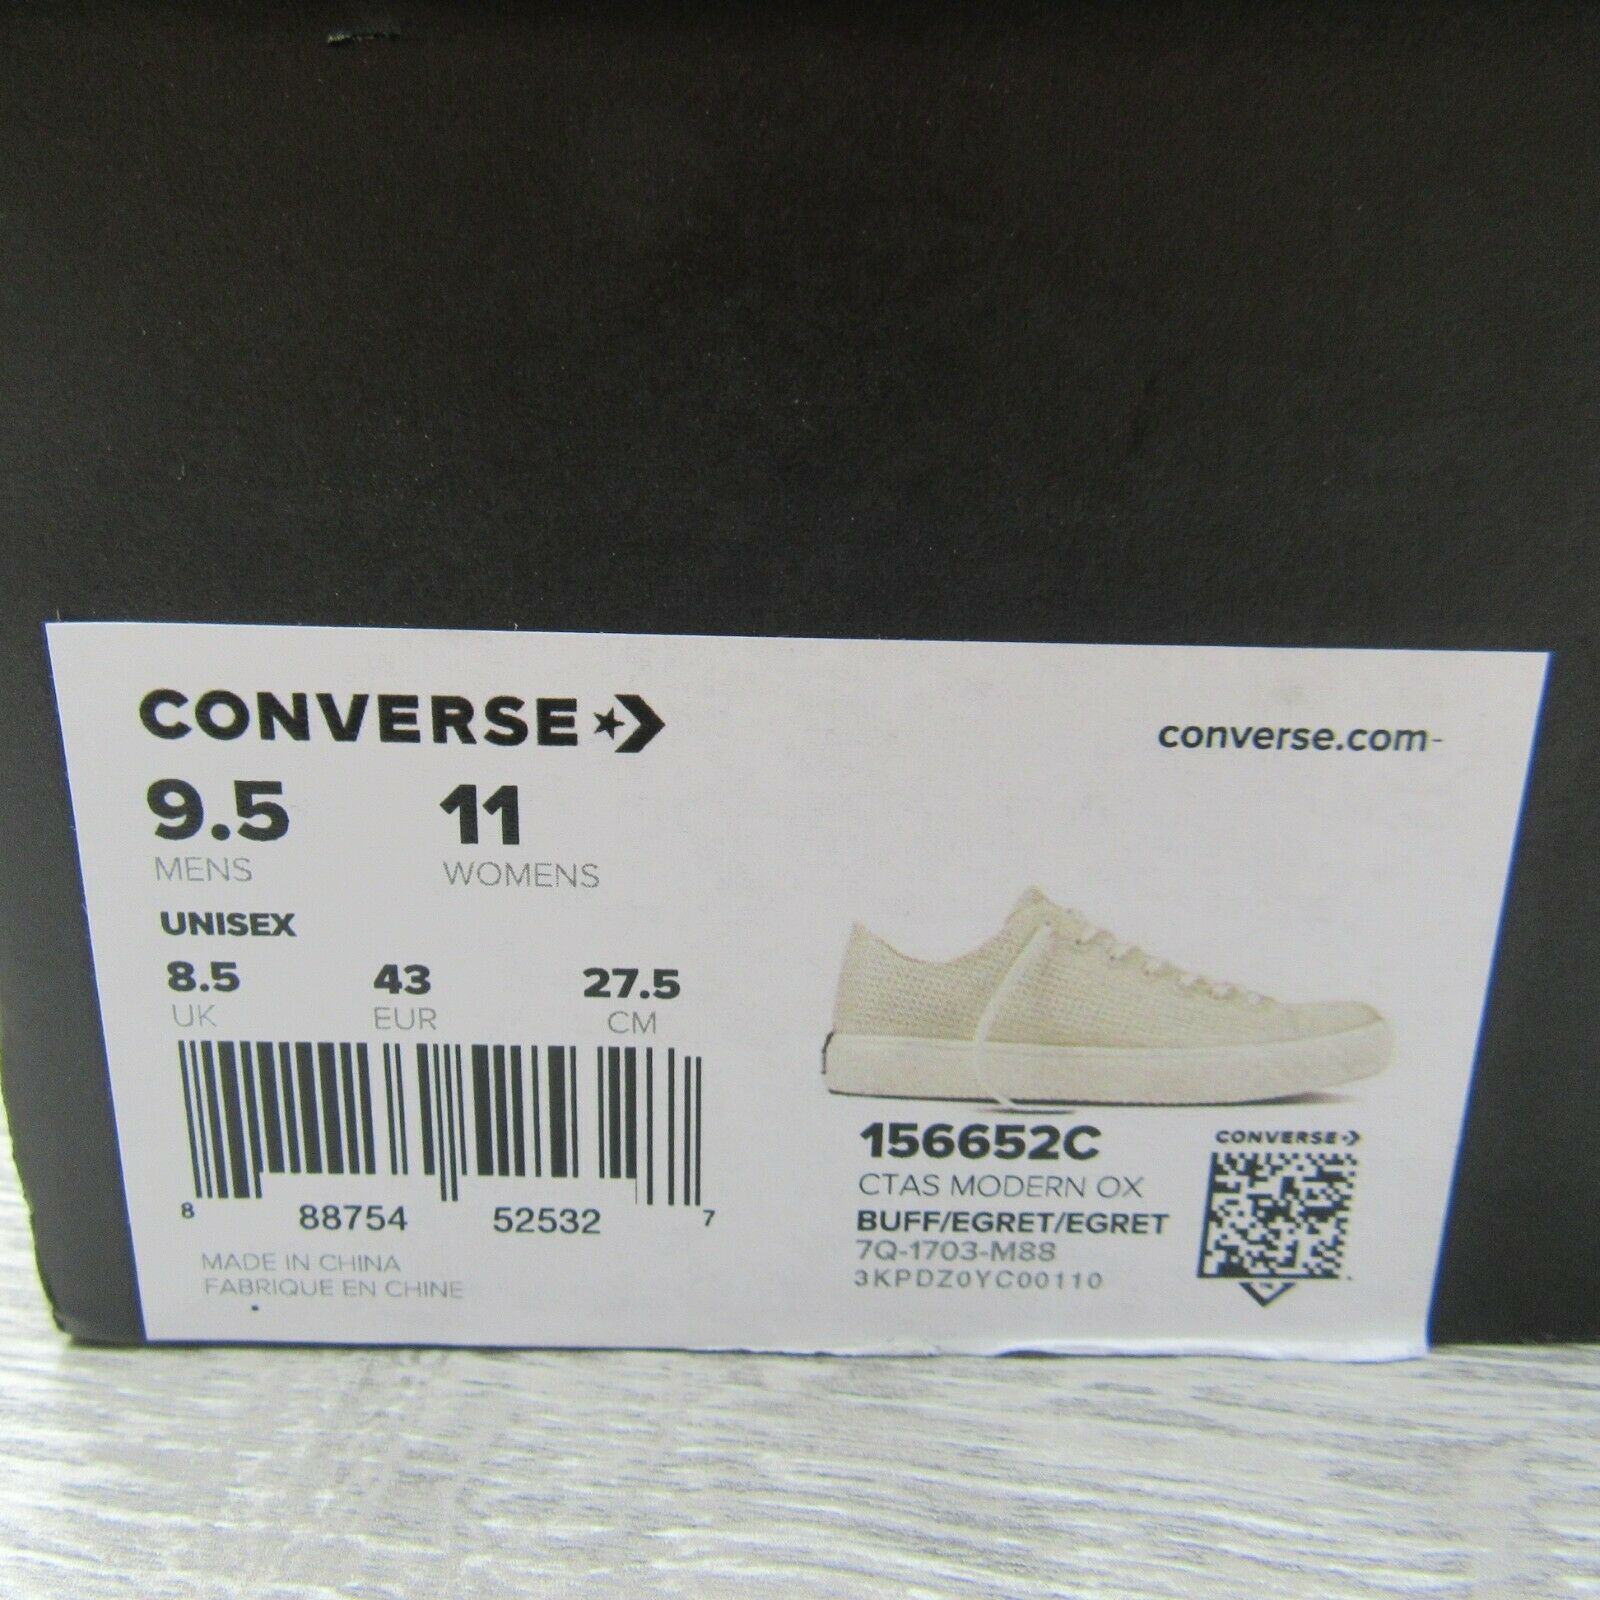 Converse CTAS Modern OX Buff White Shoes Size 9.5 Mens NEW 156652C image 11